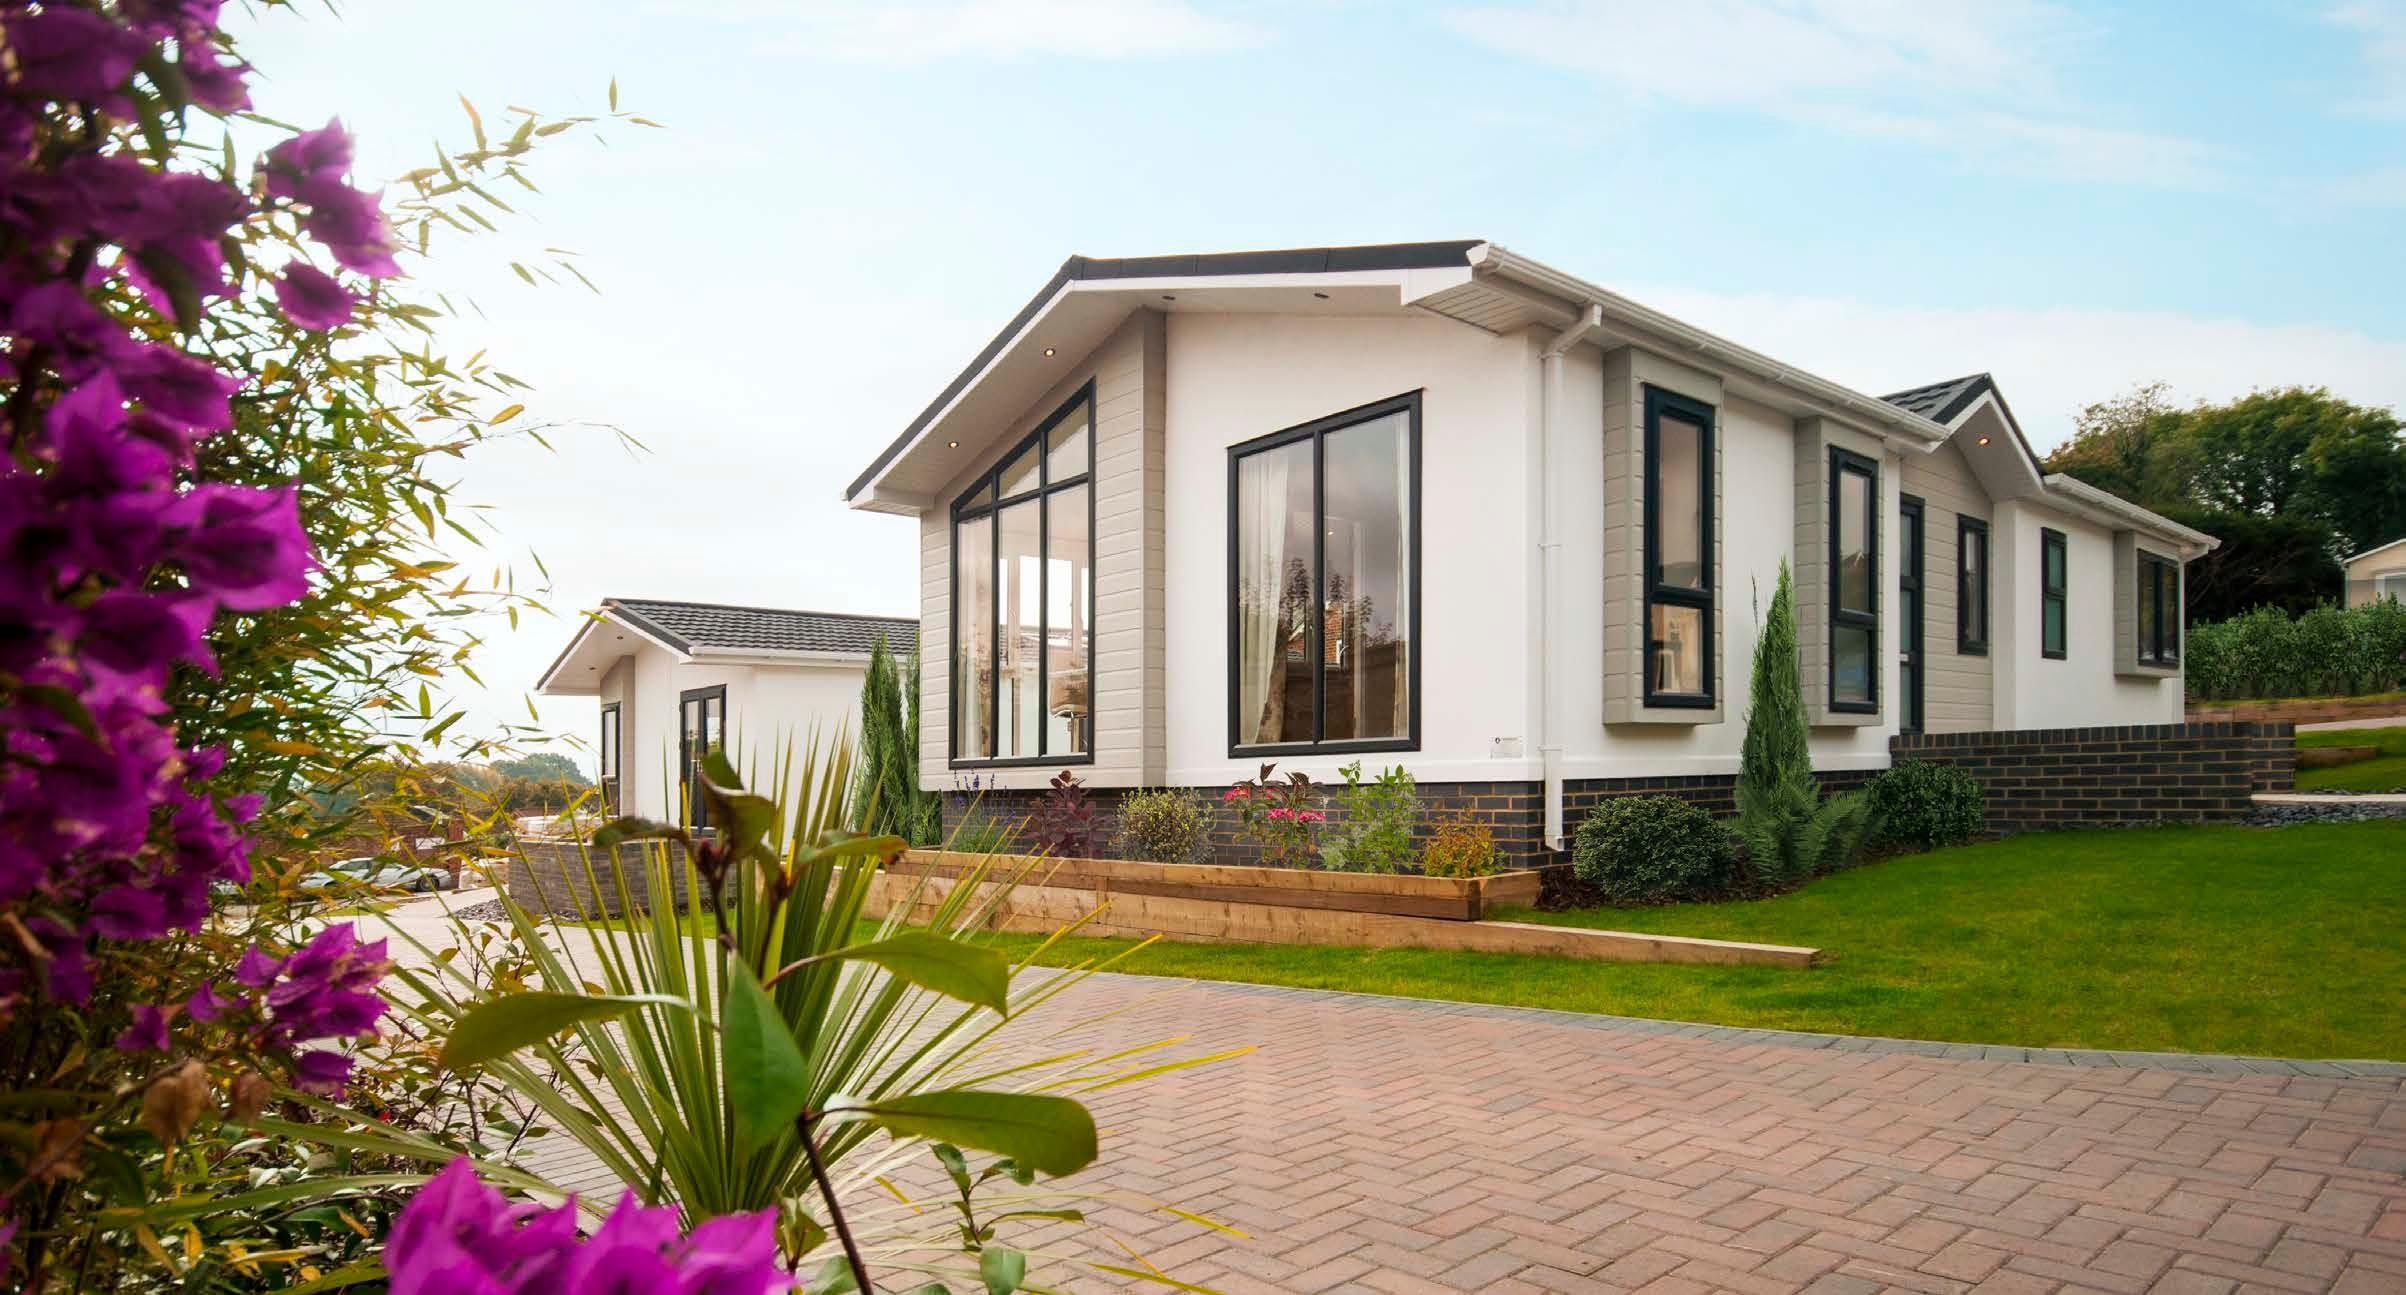 5 Reasons to Consider Buying a Park Home, Countrywide Park Homes